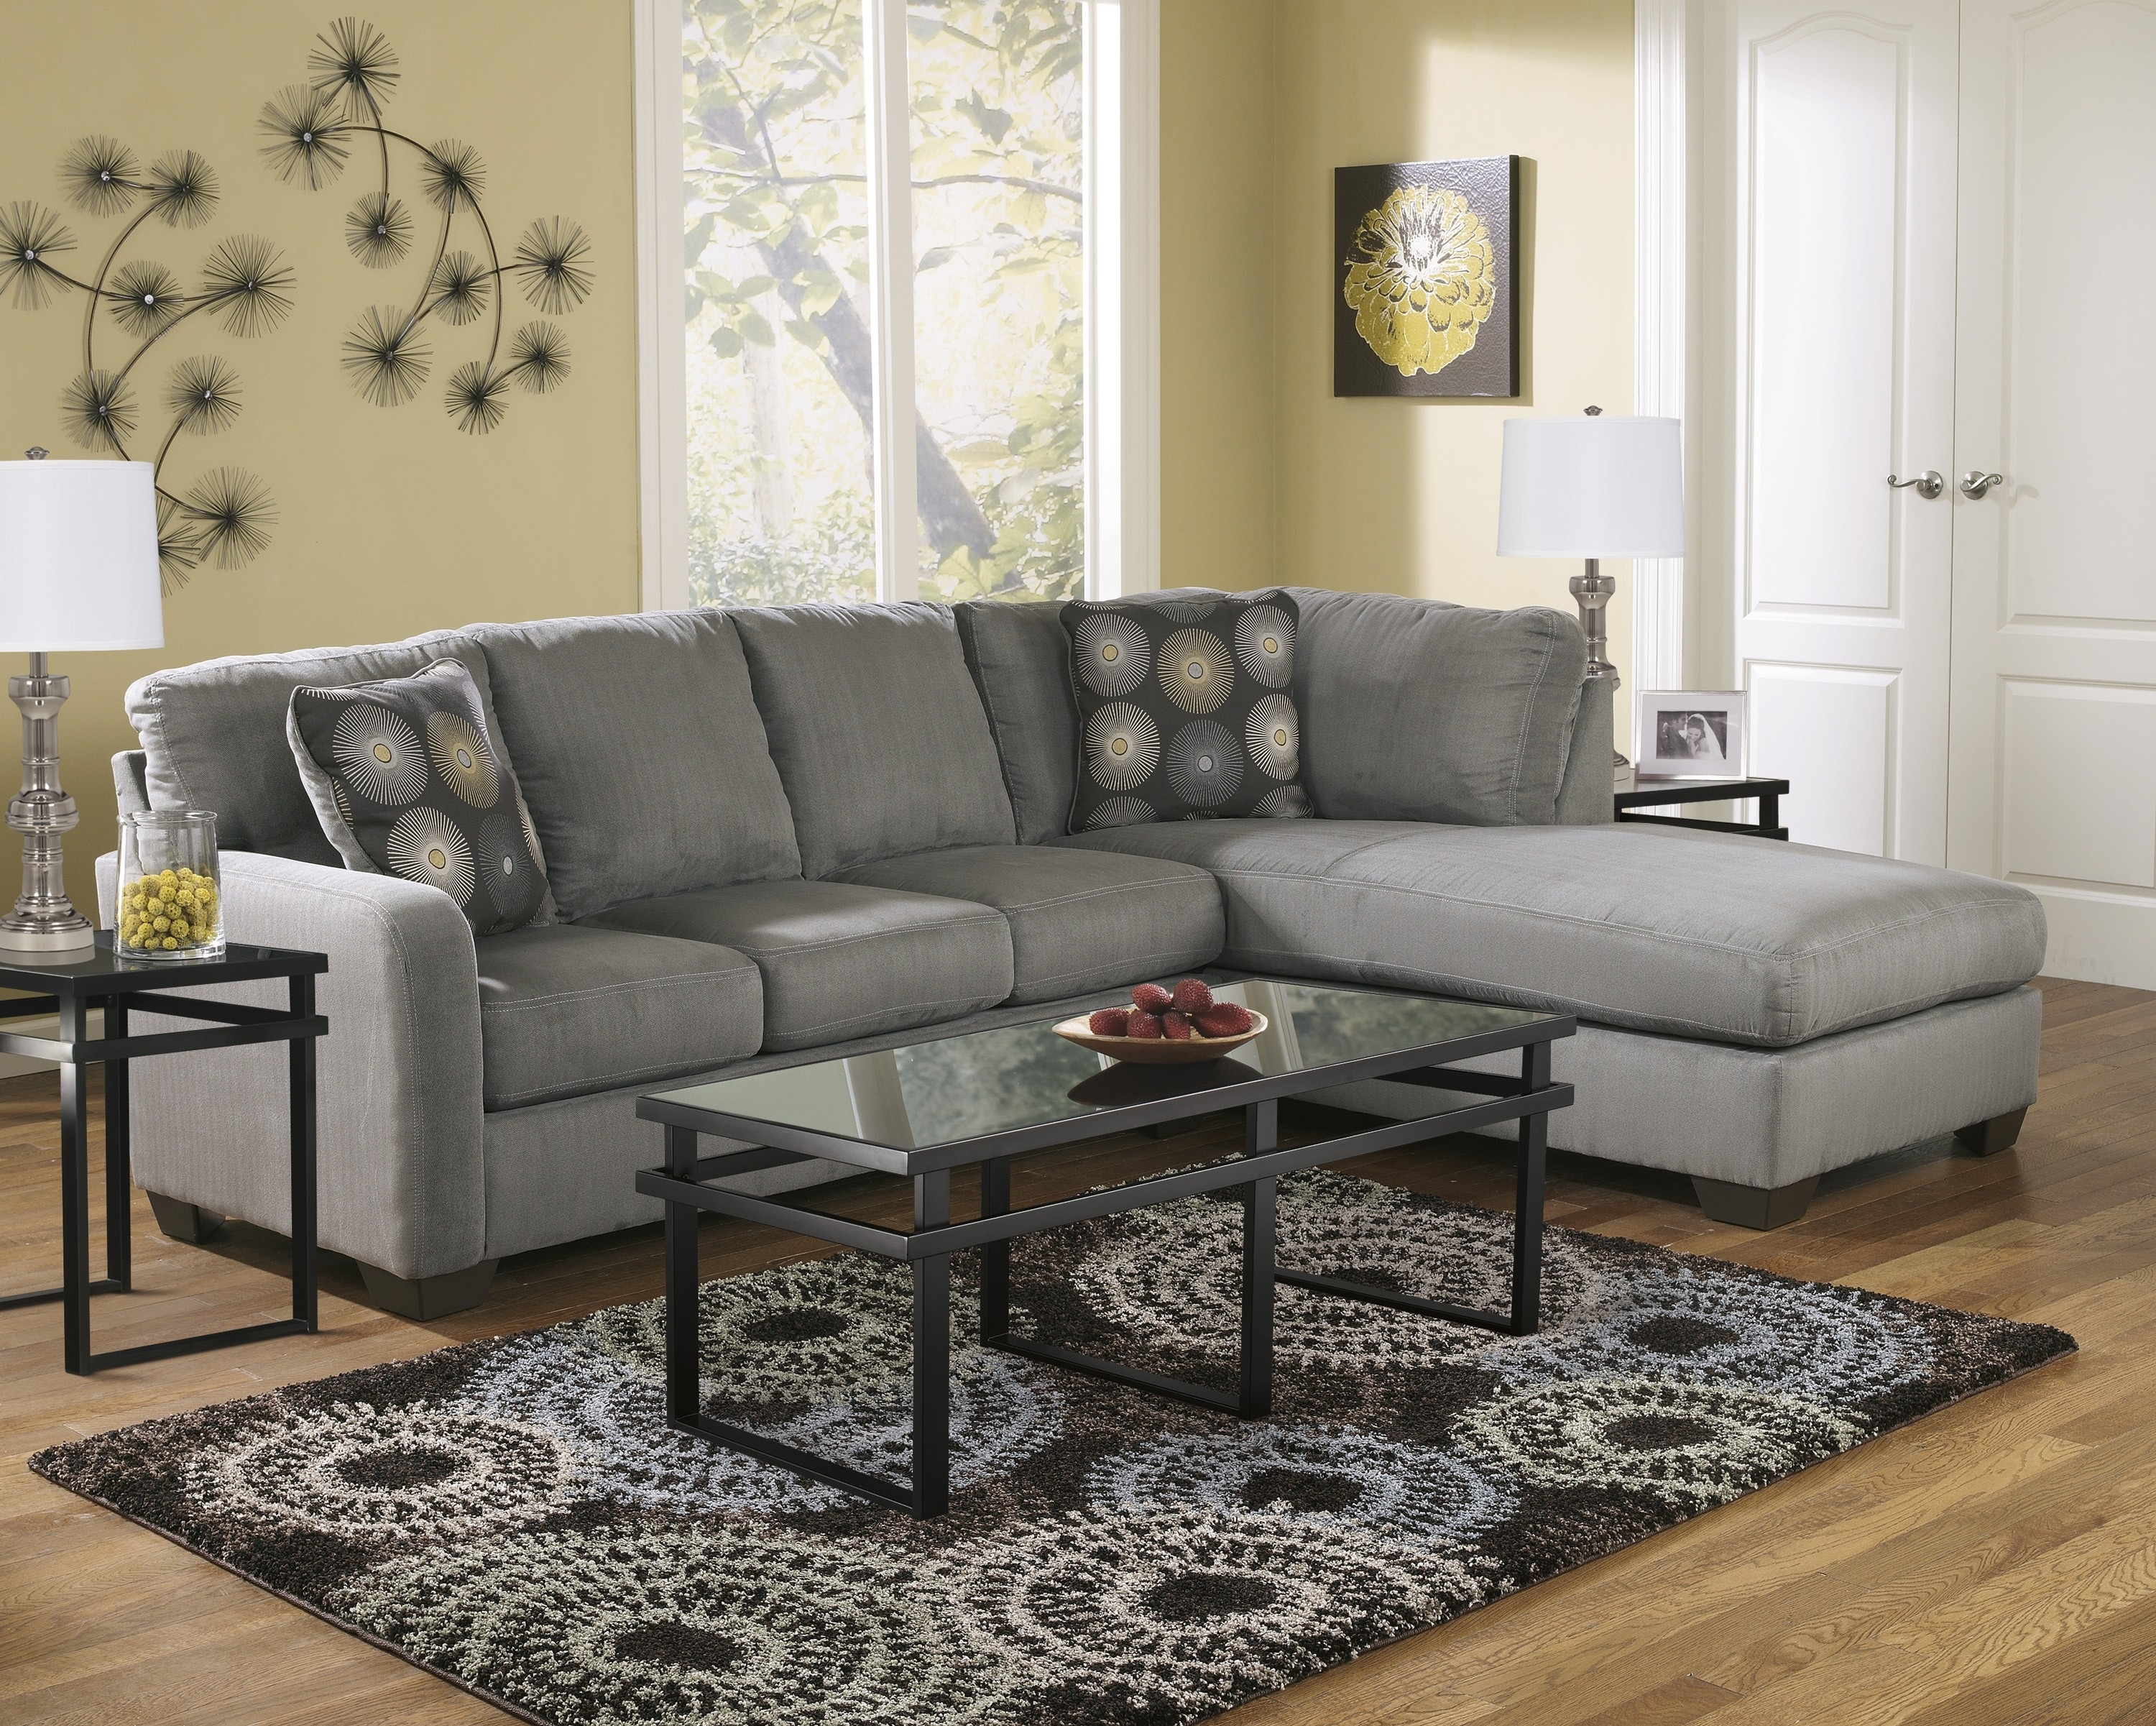 Particular Cosette Sectional Morris Home Sectional Sofas To Exciting Intended For Kerri 2 Piece Sectionals With Laf Chaise (View 25 of 25)